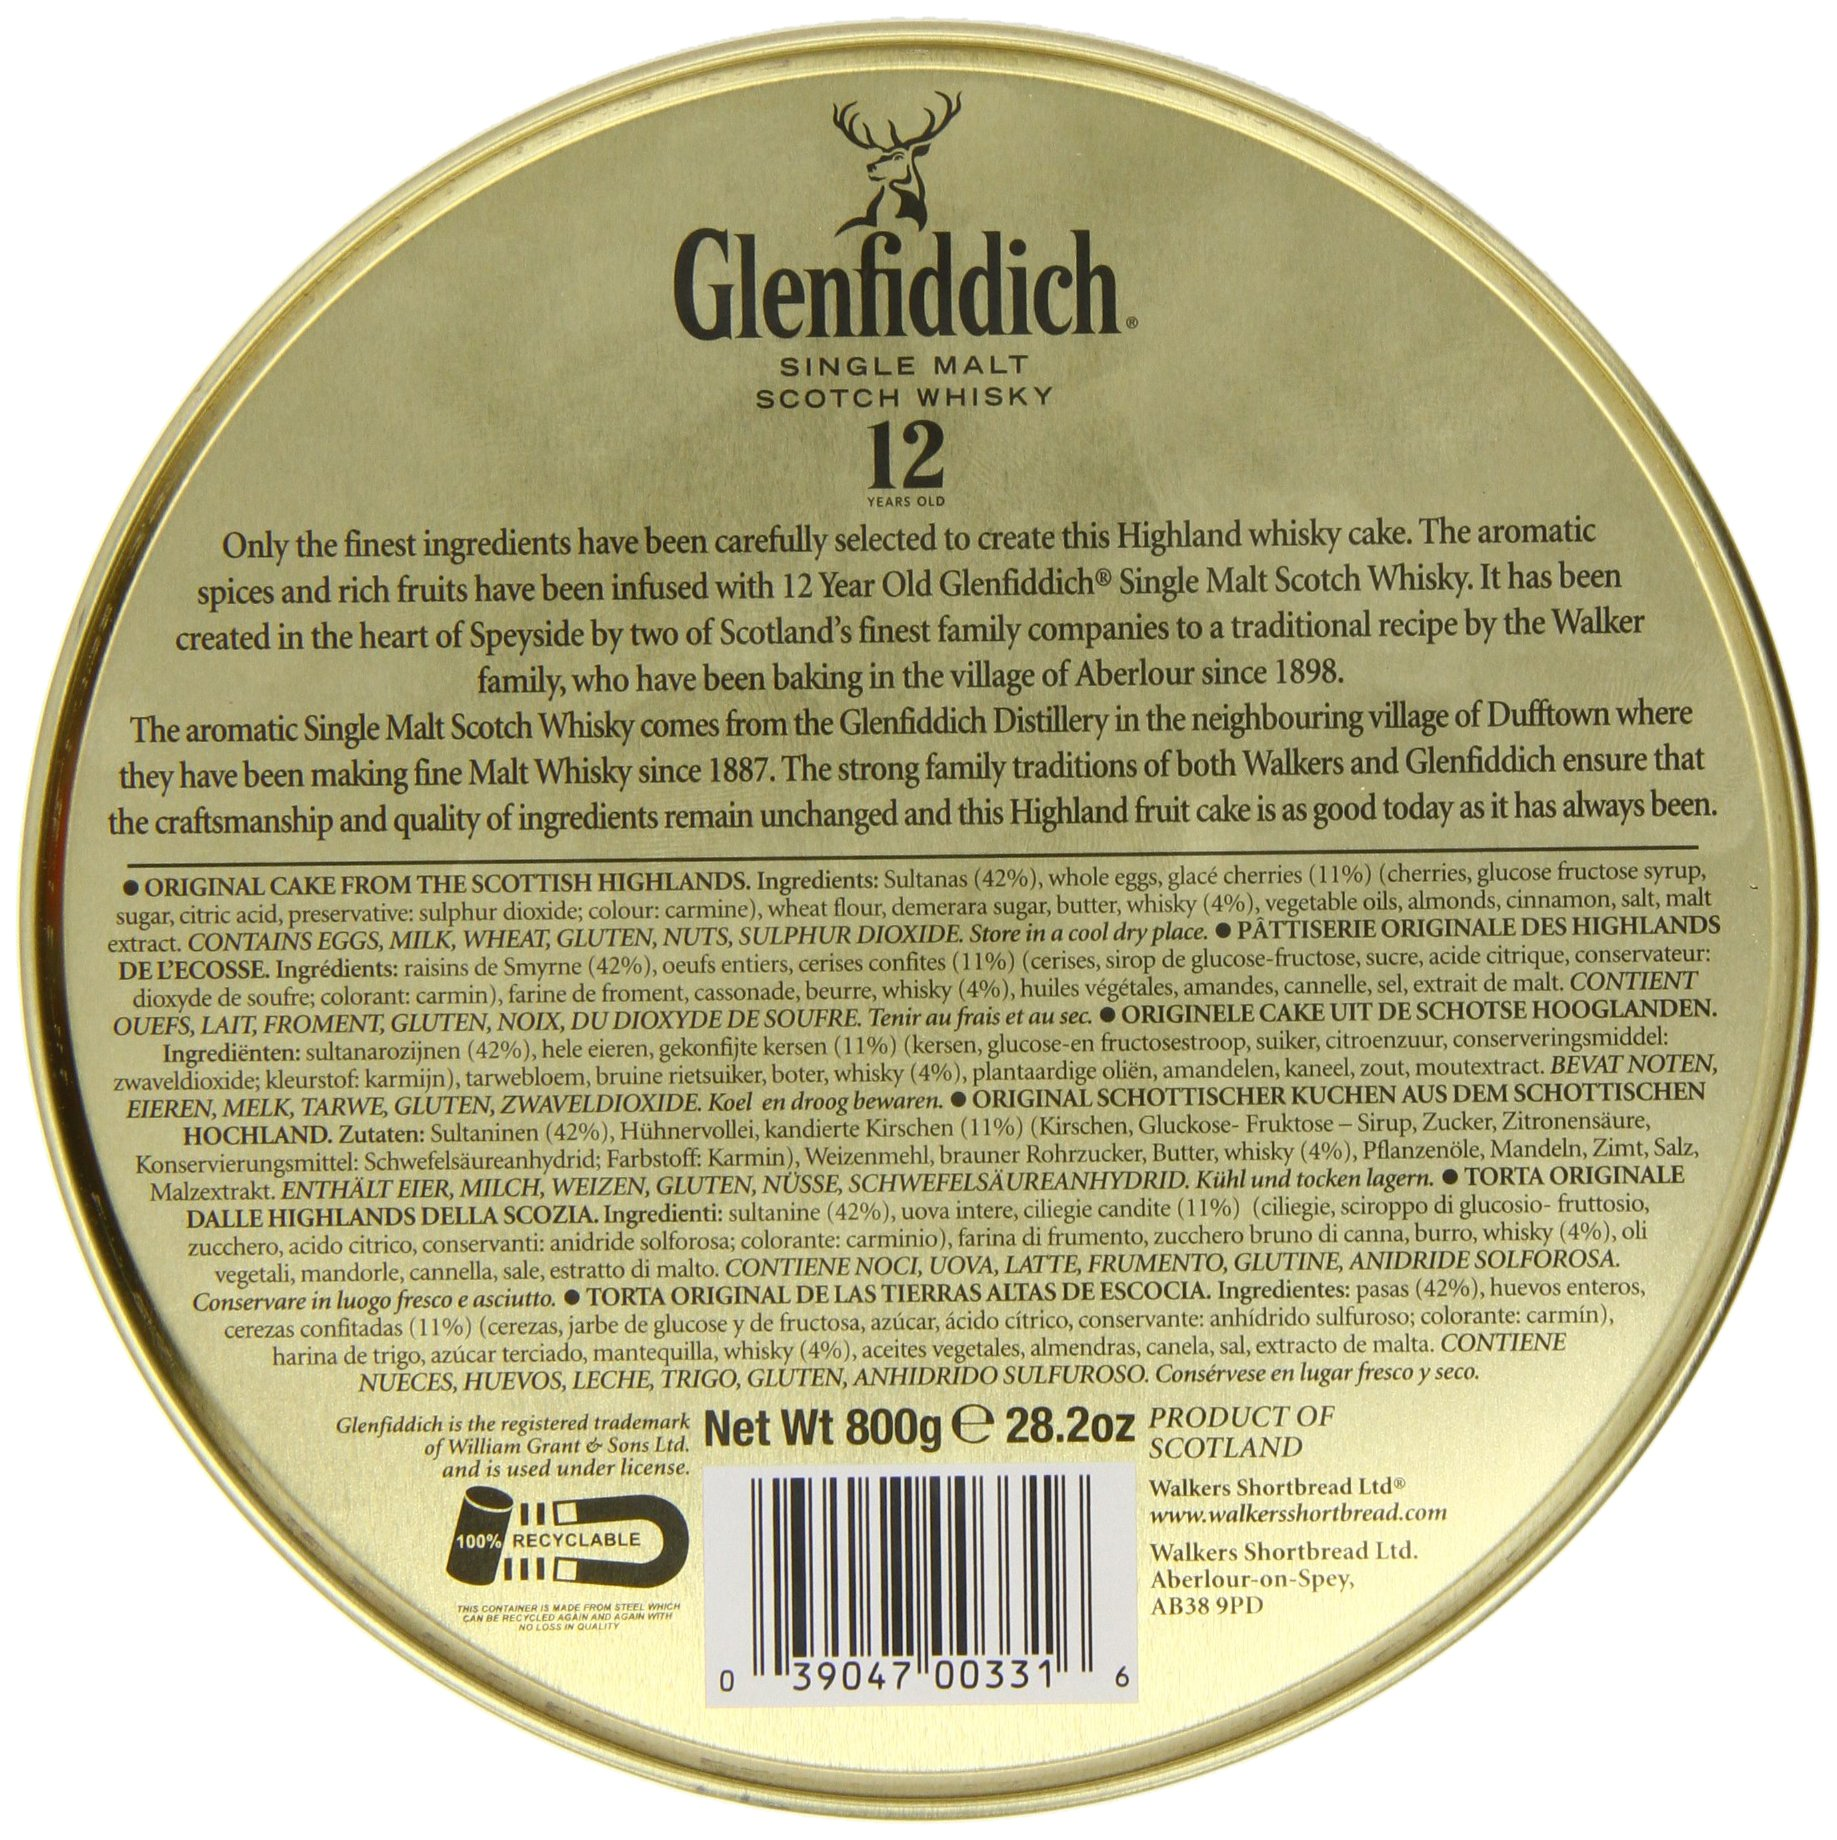 Walkers Shortbread Glenfiddich Highland Whisky Cake, 28.2 Ounce Tin Traditional Scottish Fruit Cake with Glenfiddich Malt Whisky, Cherries, Sultanas by Walkers Shortbread (Image #3)